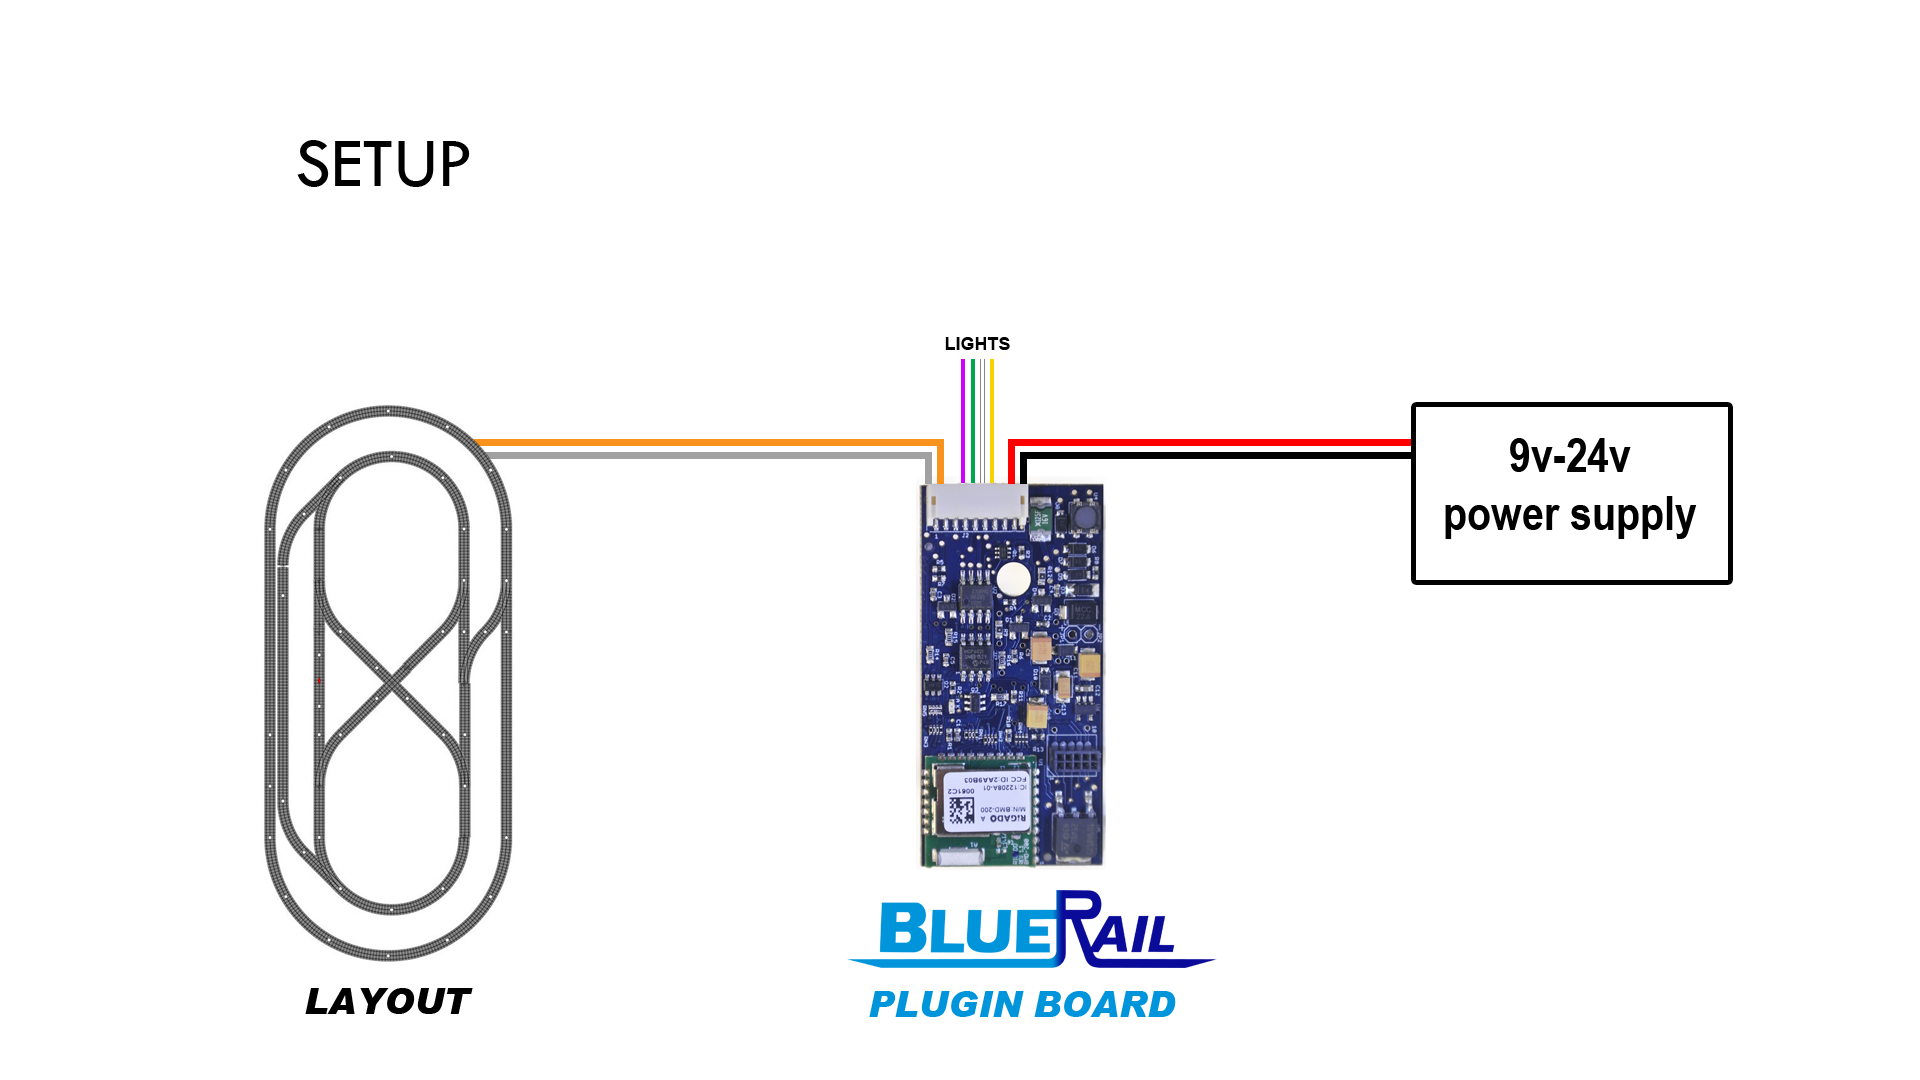 Usershowcase Bluerail Trains Mth Wiring Diagrams Ks Diagram